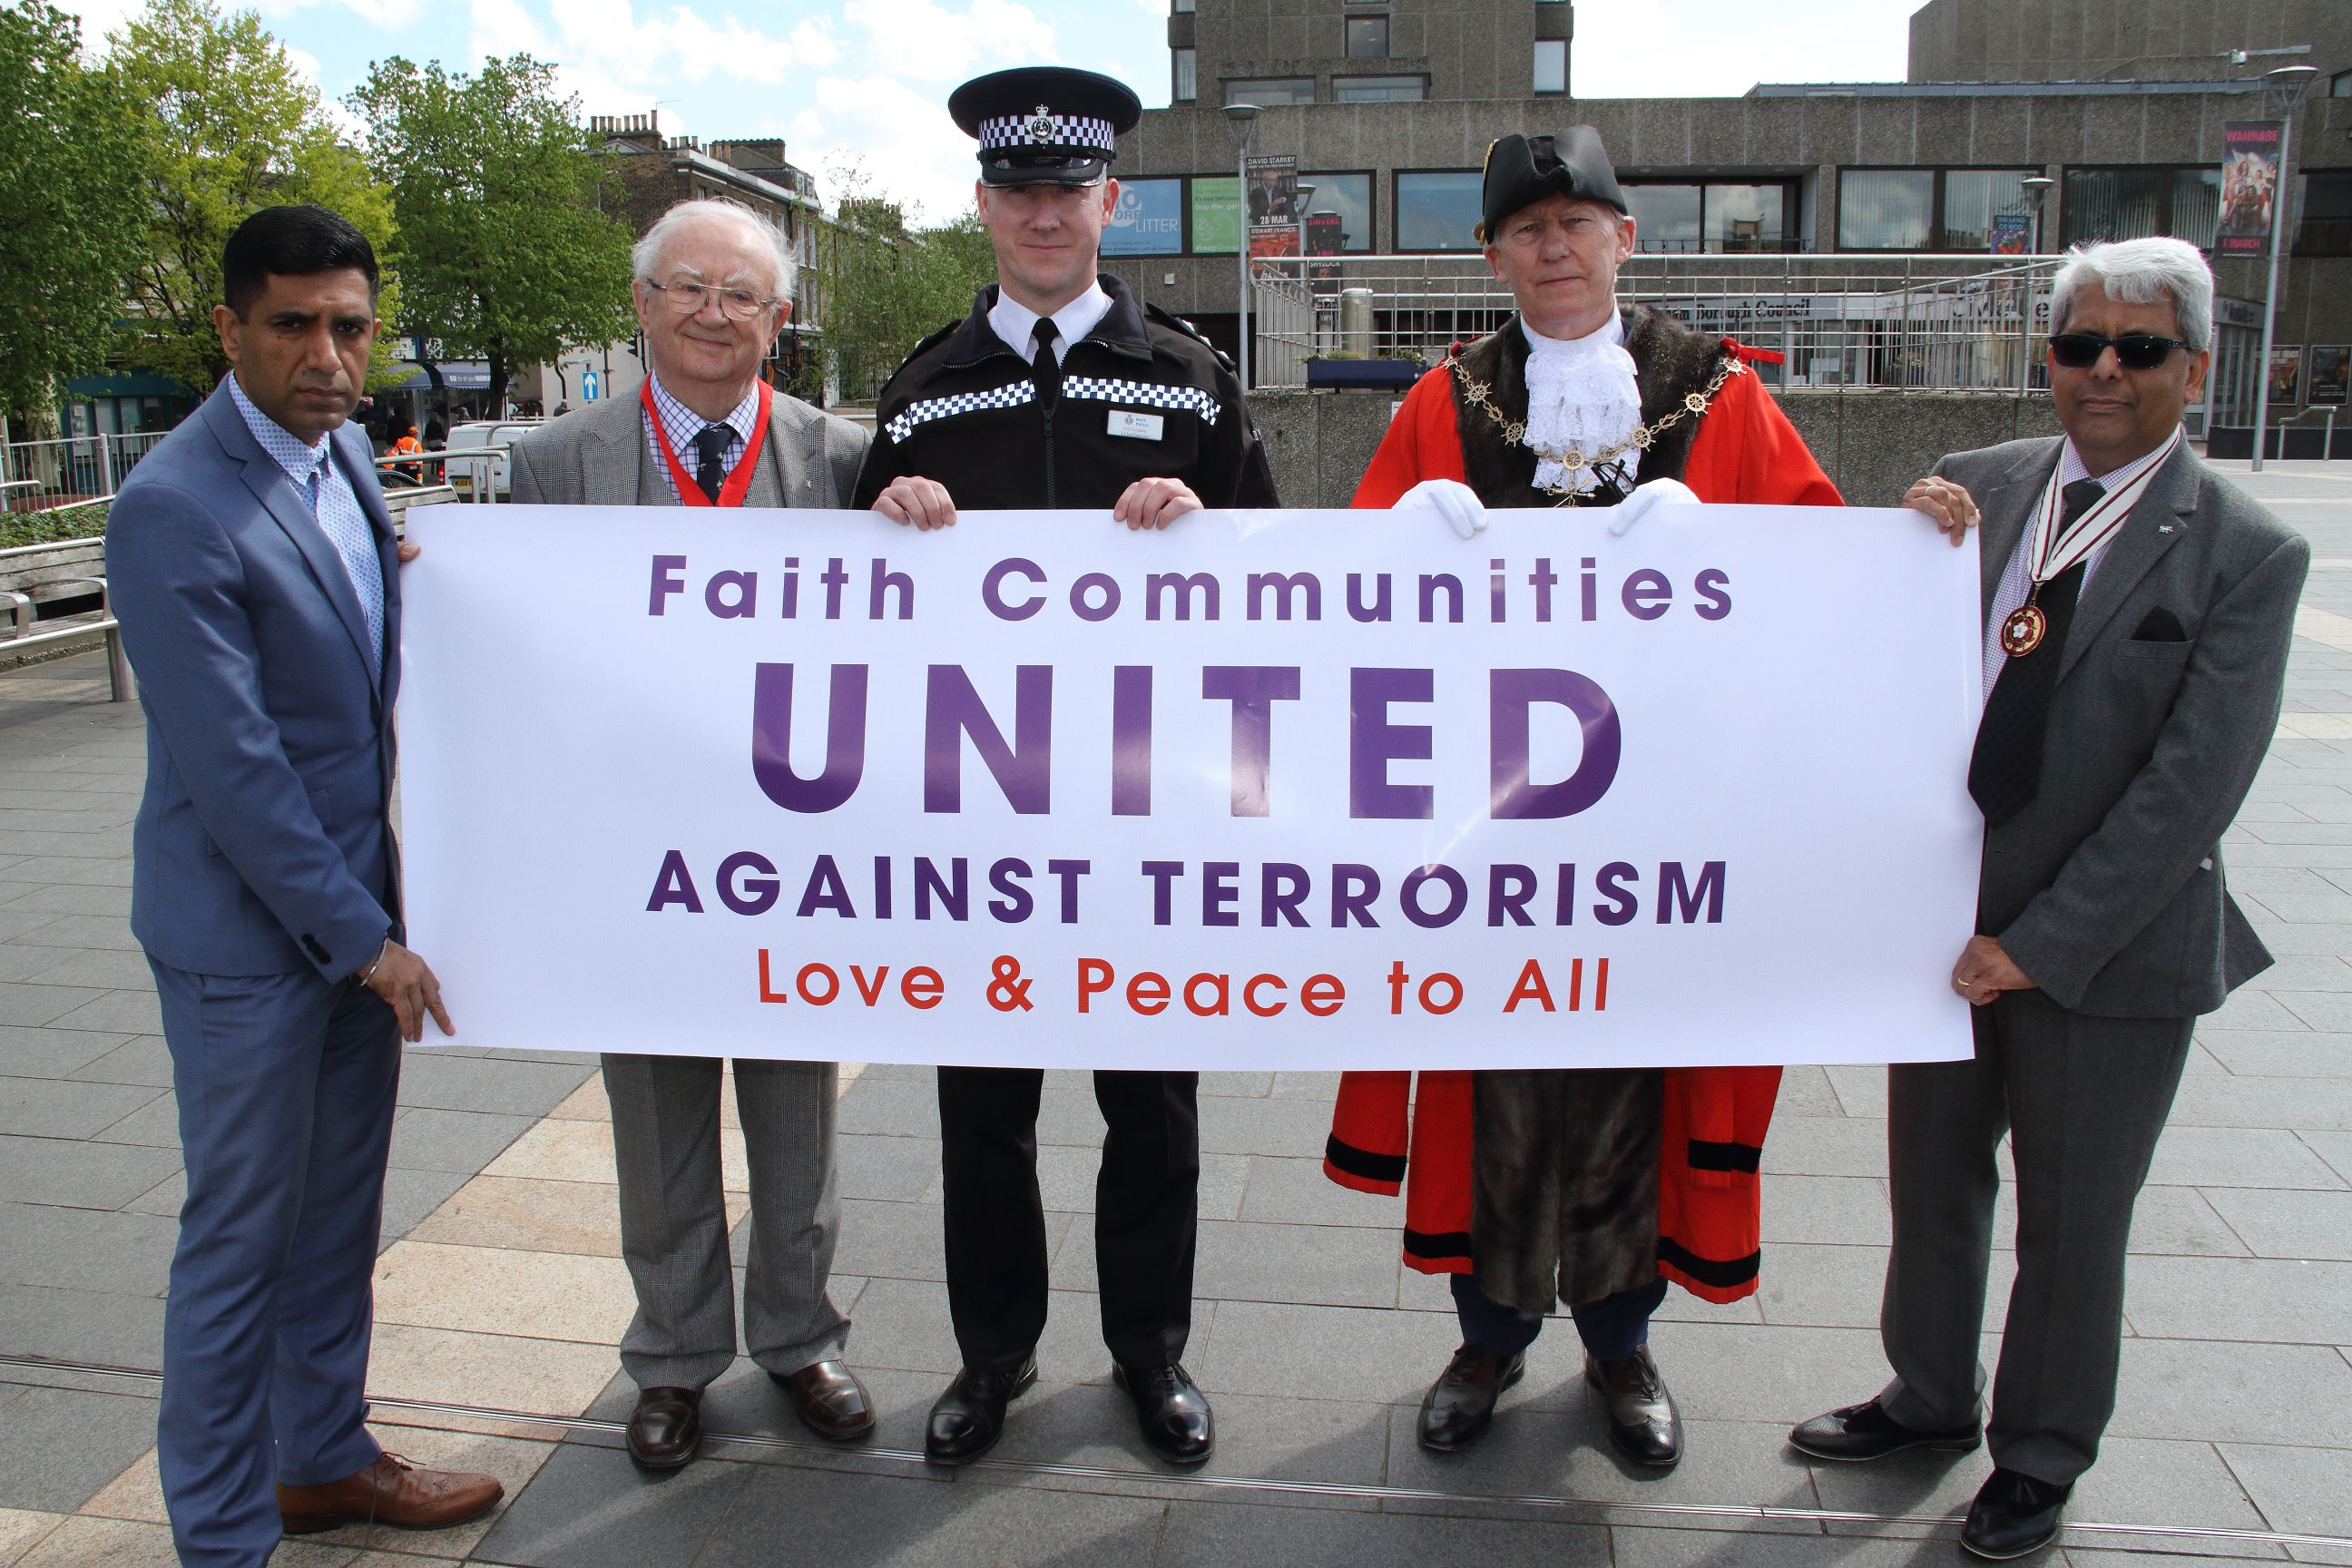 Inter-faith gathering pays respects to terror victims